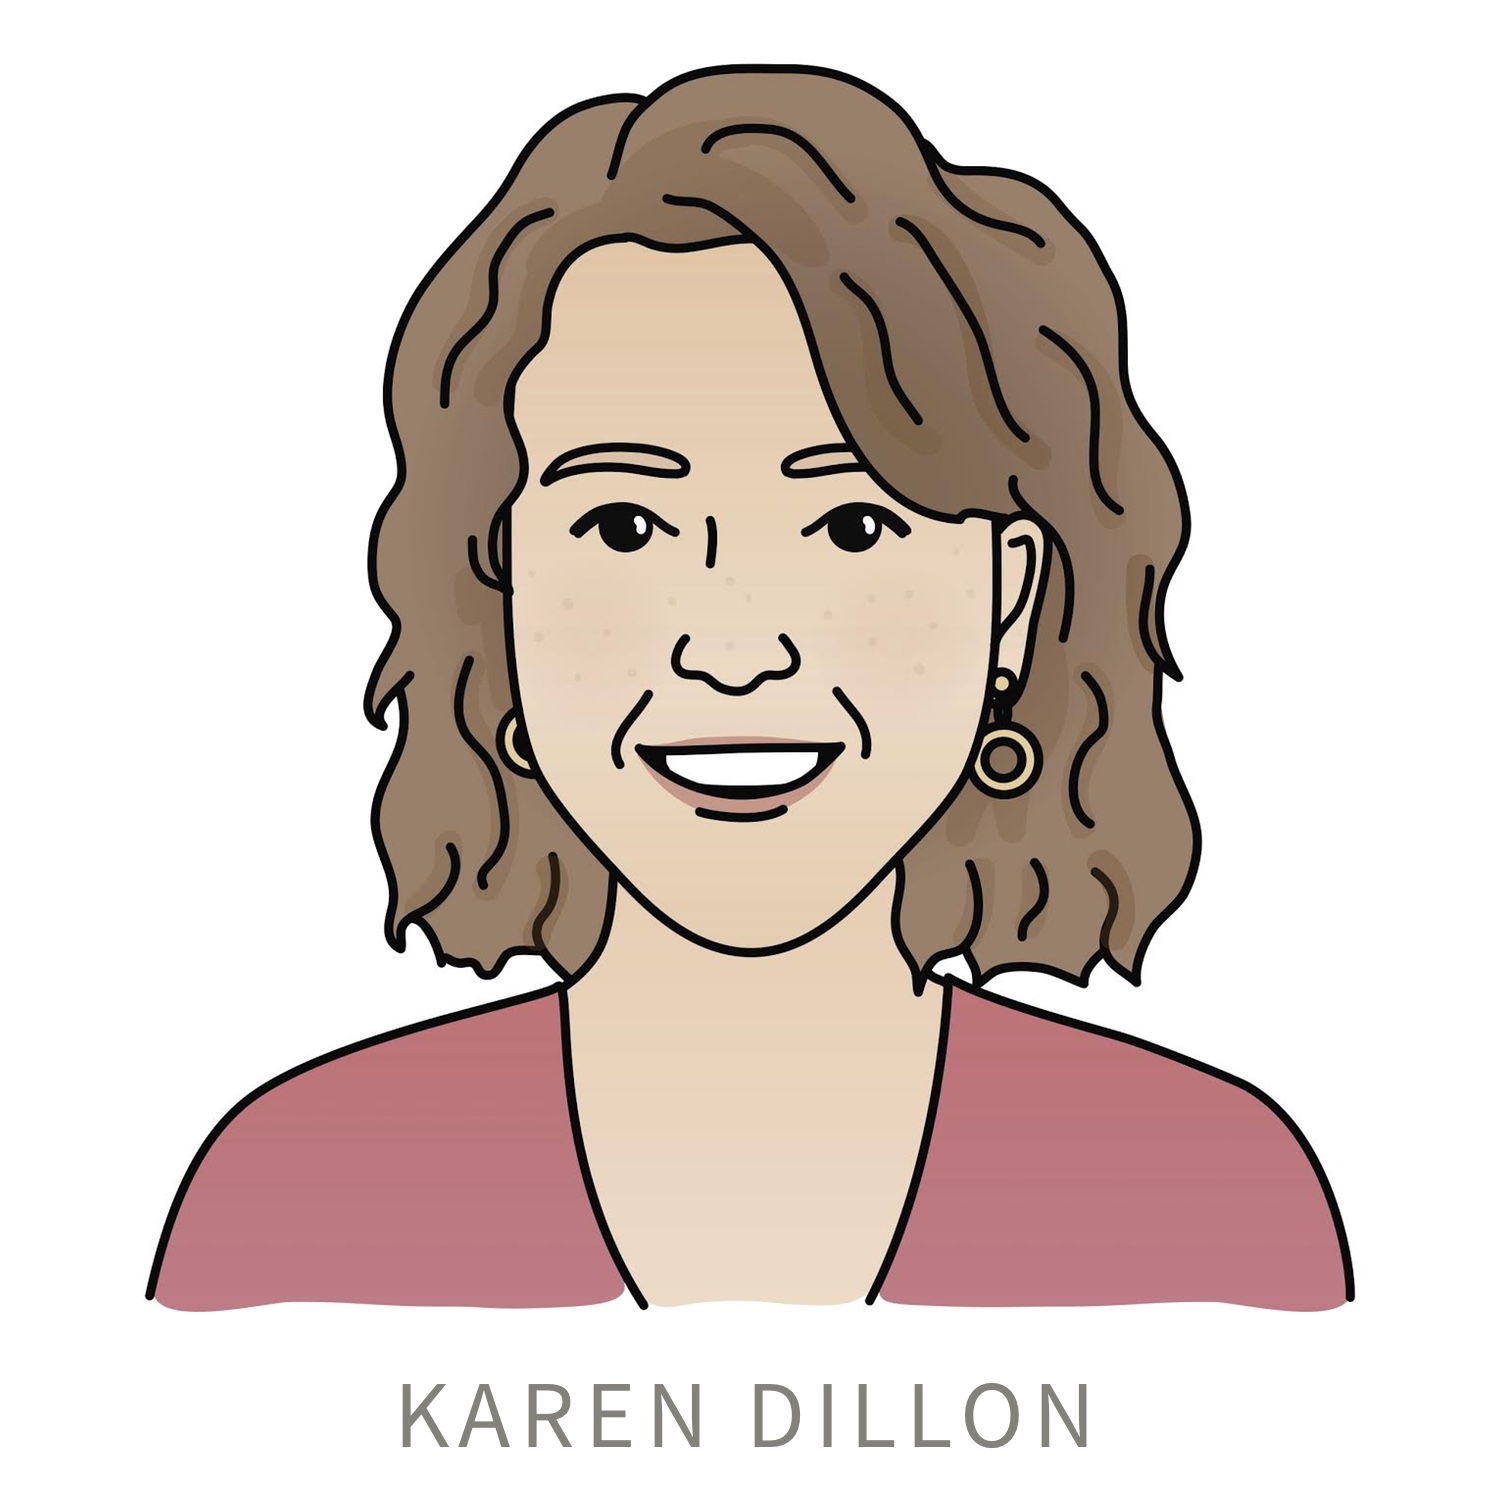 Karen Dillon Intellects.co